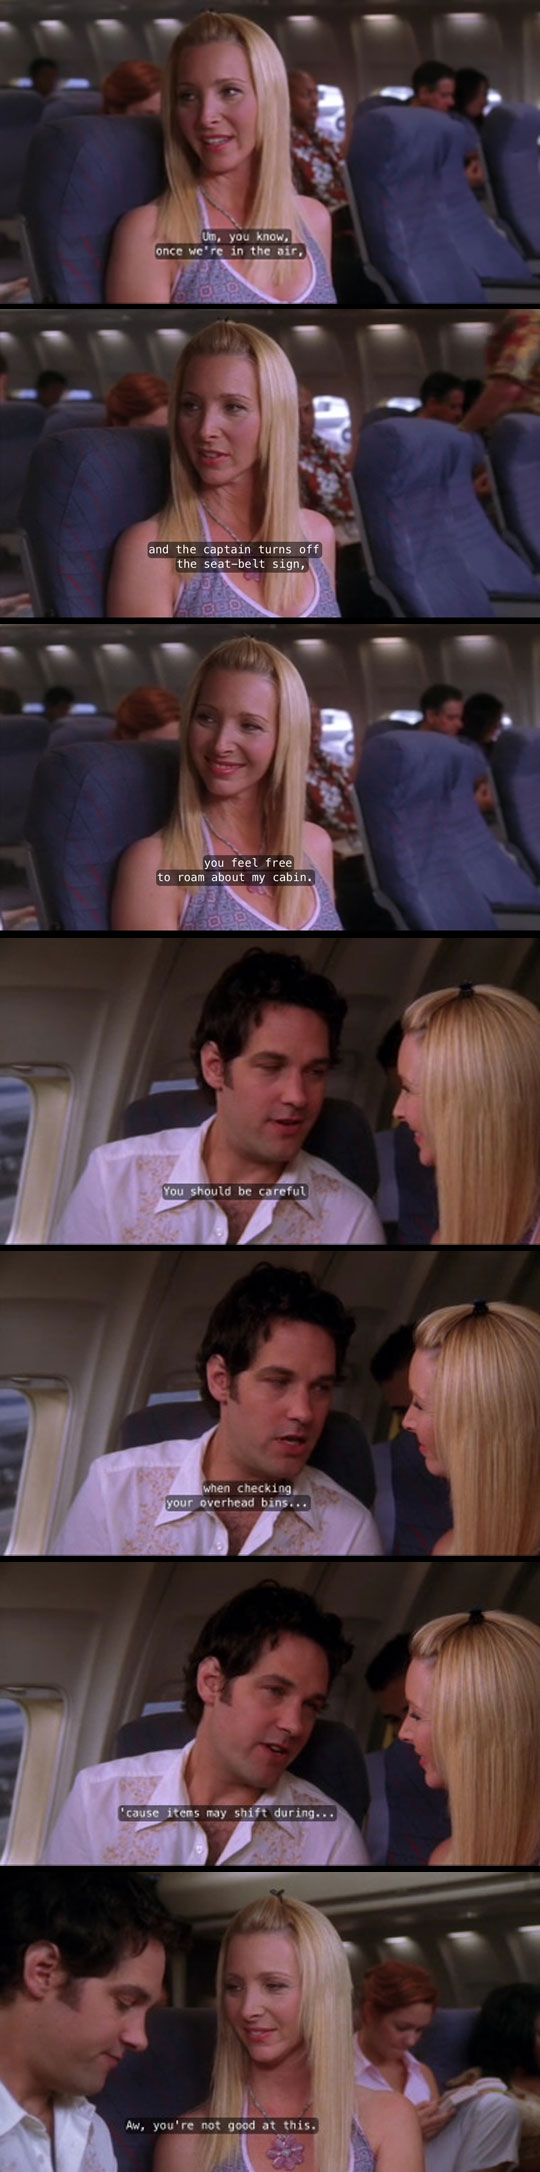 funny-Phoebe-plane-Mike-bad-joke